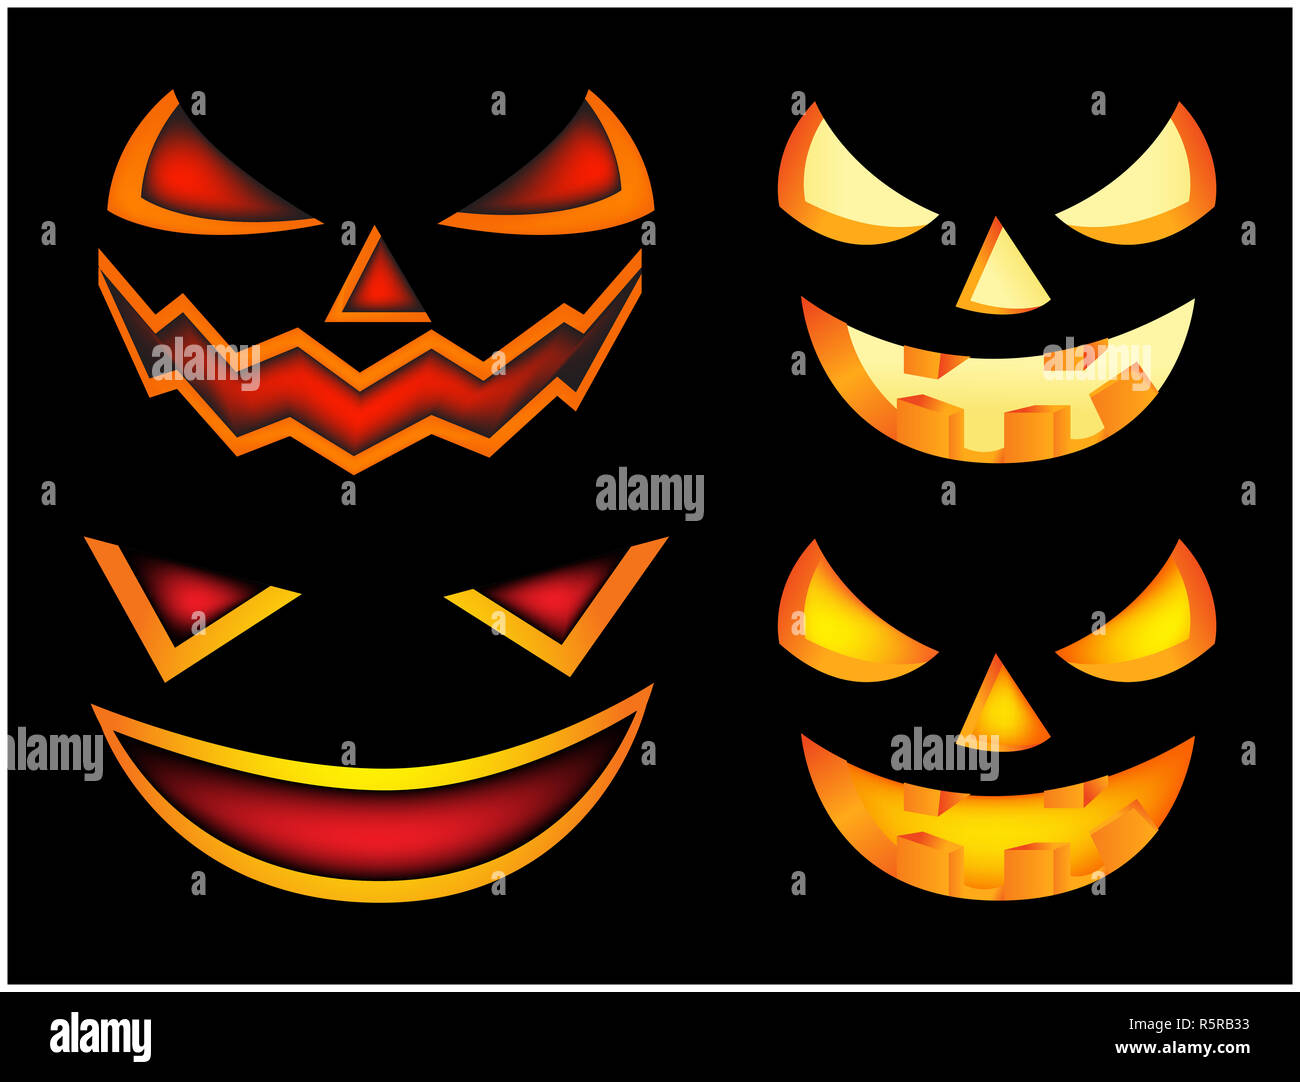 Halloween Scary Pumpkin Face Vector Illustration Set Jack O Lantern Smile Isolated On Black Background Scary Orange Picture With Eyes In The Dark Stock Photo Alamy